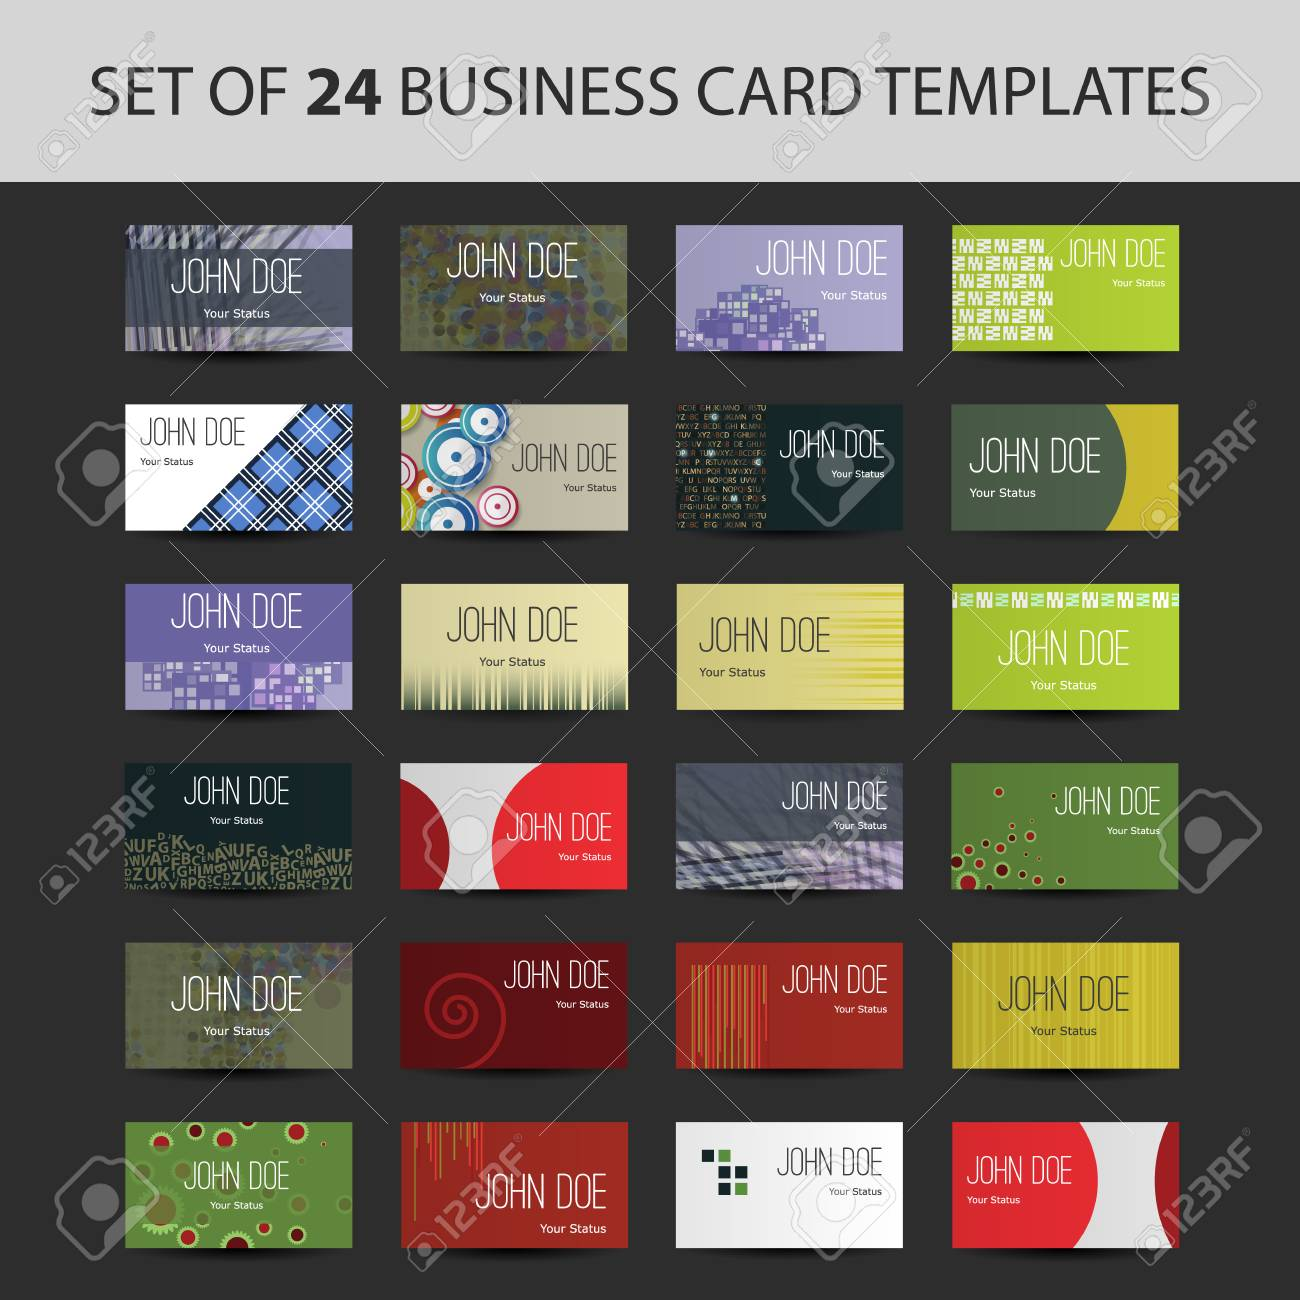 Set Of 24 Business Card Templates - Colorful Backgrounds And ...